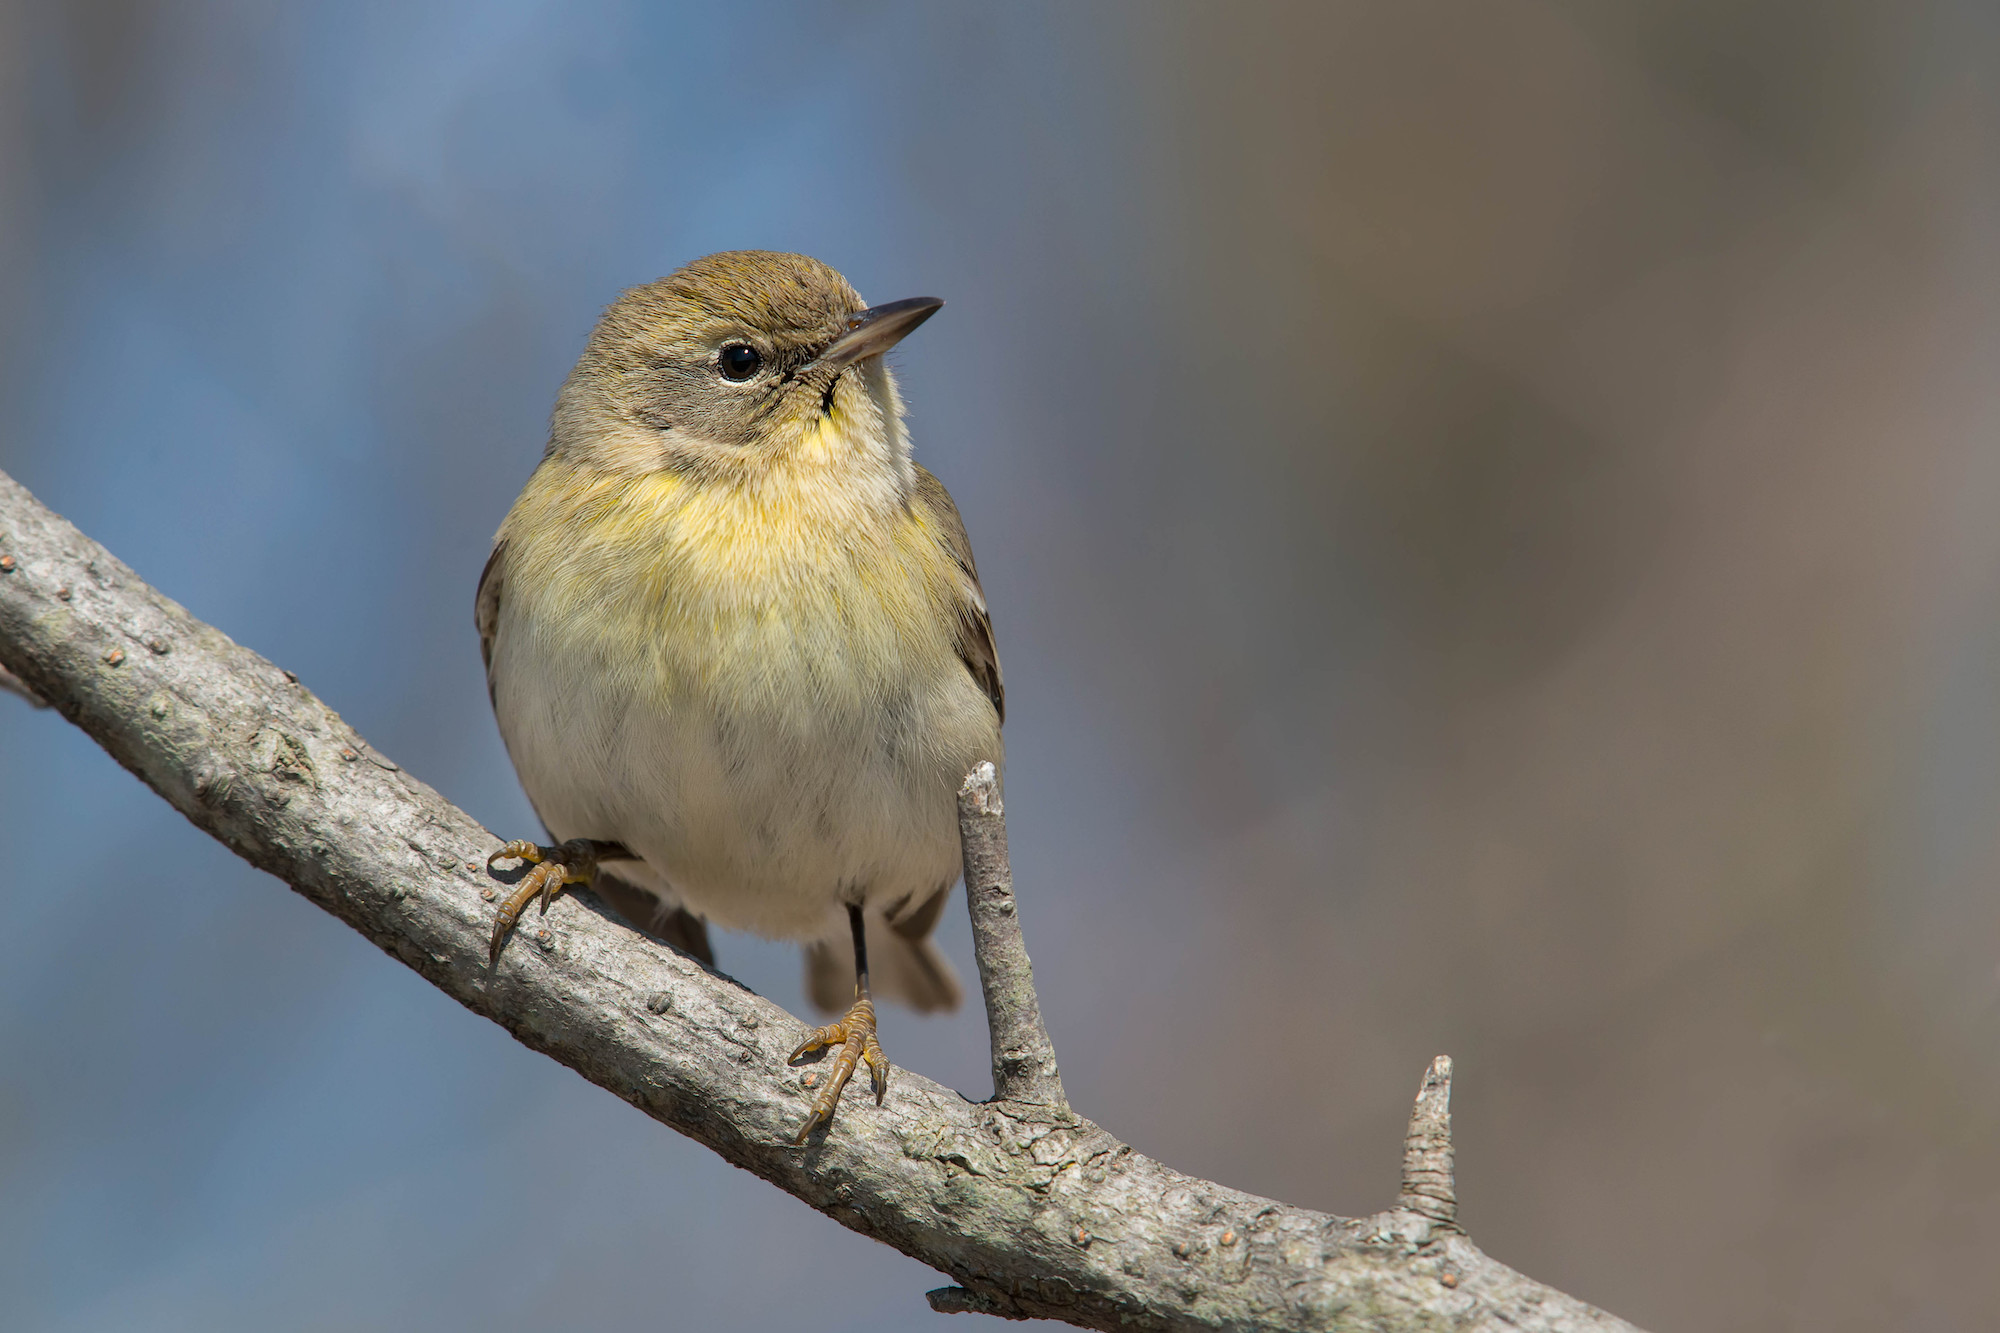 Download our guide to fall warbler ID